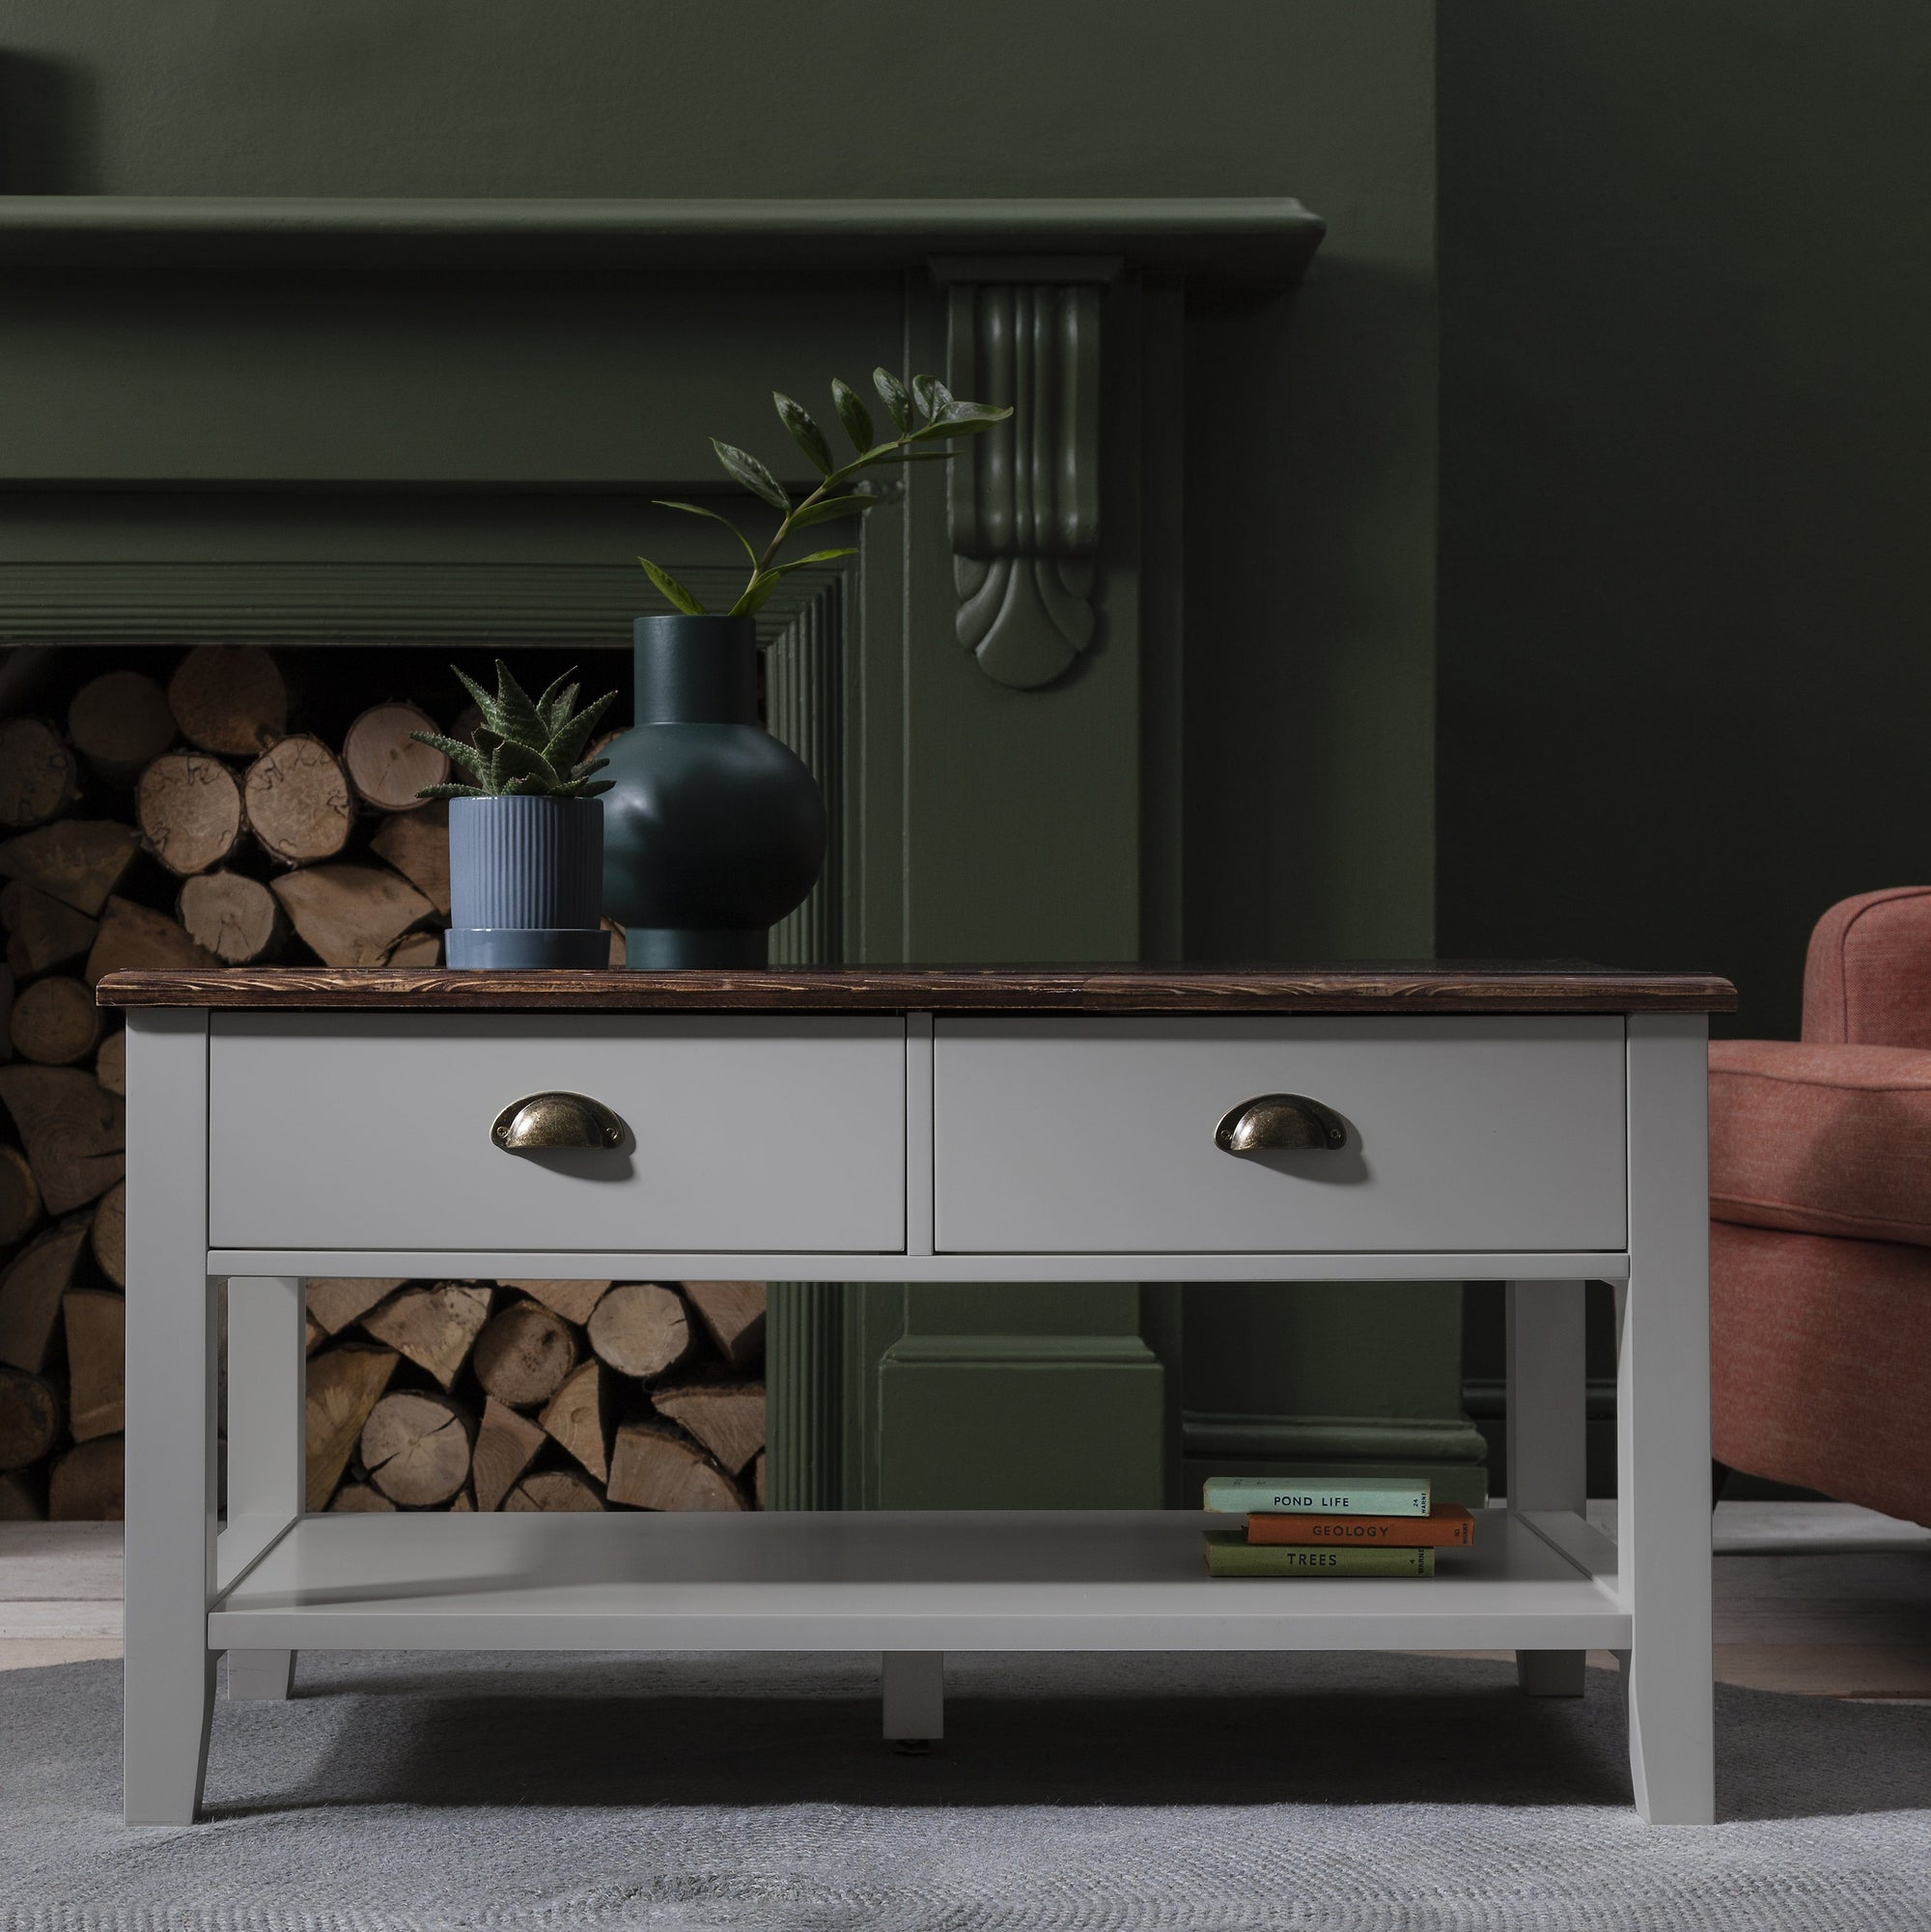 Grey Wooden Coffee Table with 4 Storage Drawers - Laura James